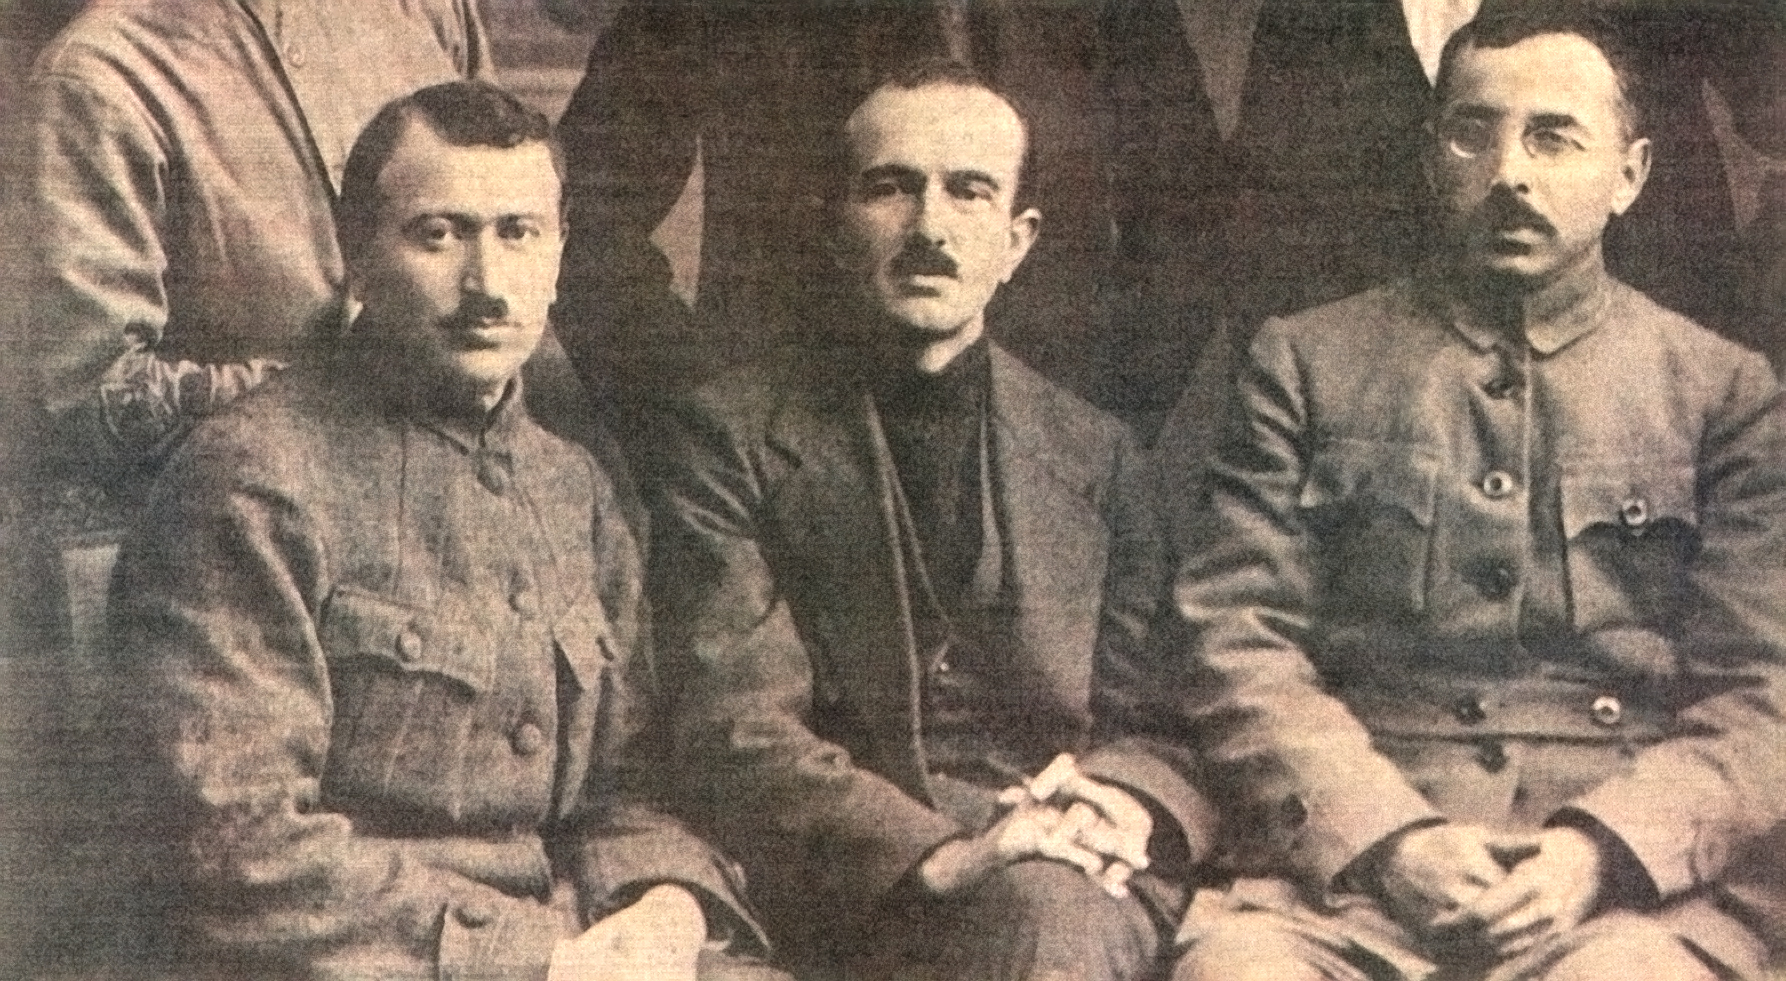 Image result for Mustafa Suphi communist party of Turkey images